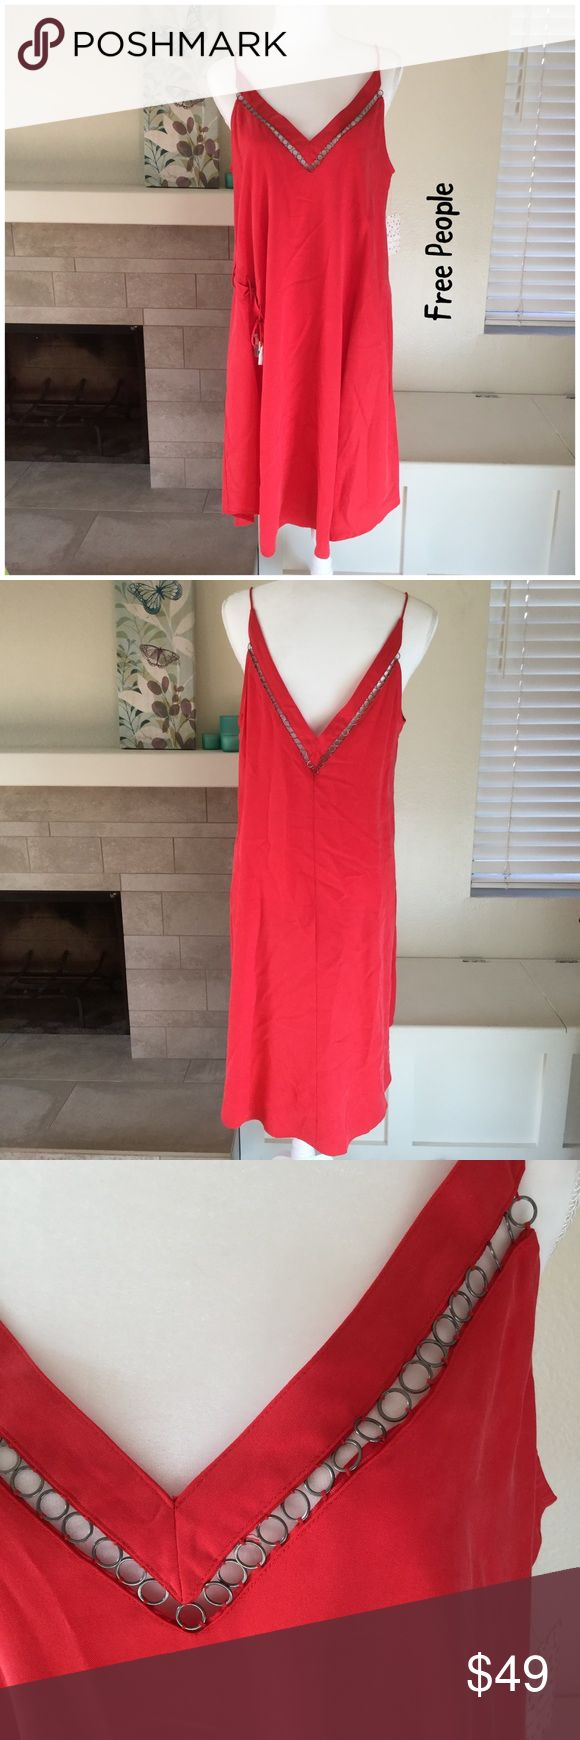 """🆕 NWT Free People All I Want red dress From festival to date night, this dress has you covered.  🐾 Red with grommets accents along neckline (front and back) 🐾 Side slit (right side) 🐾 Lace up side (ends still wrapped in tissue) 🐾 Spaghetti strap 🐾 V-neck front and back 🐾 Pullover style (no zippers) 🐾 Bust: 20"""" 🐾 Length: 42"""" 🐾 100% tencel 🐾 Machine wash, tumble dry 🐾 NWT  🐾 Bundle discount 🐾 No trades, no PP 🐾 Smoke free, pet friendly home Free People Dresses Midi"""